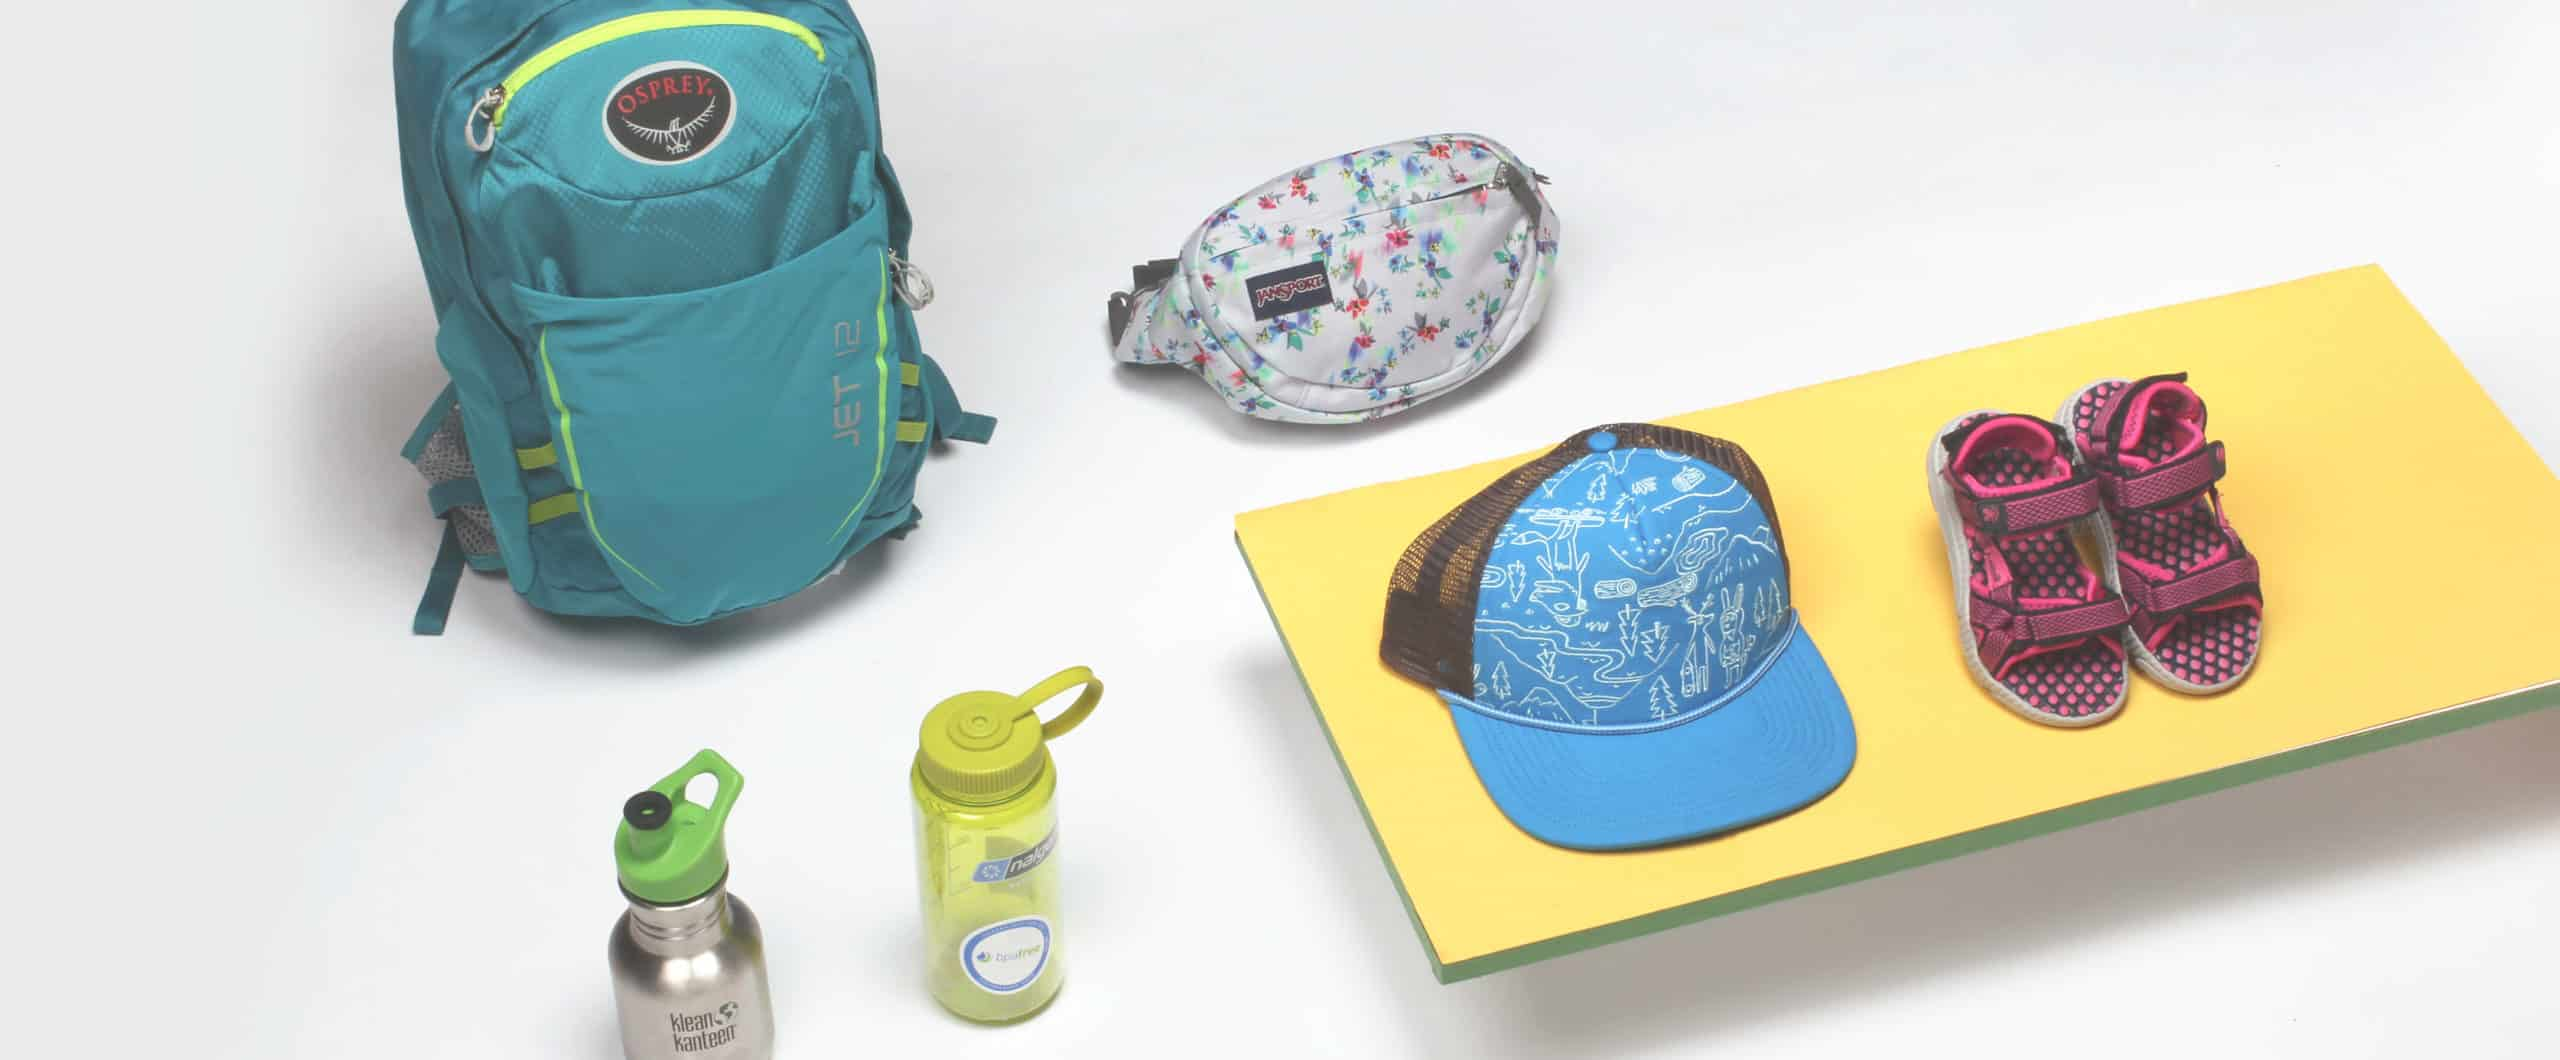 15 Summer Camp Essentials You Need To Pack